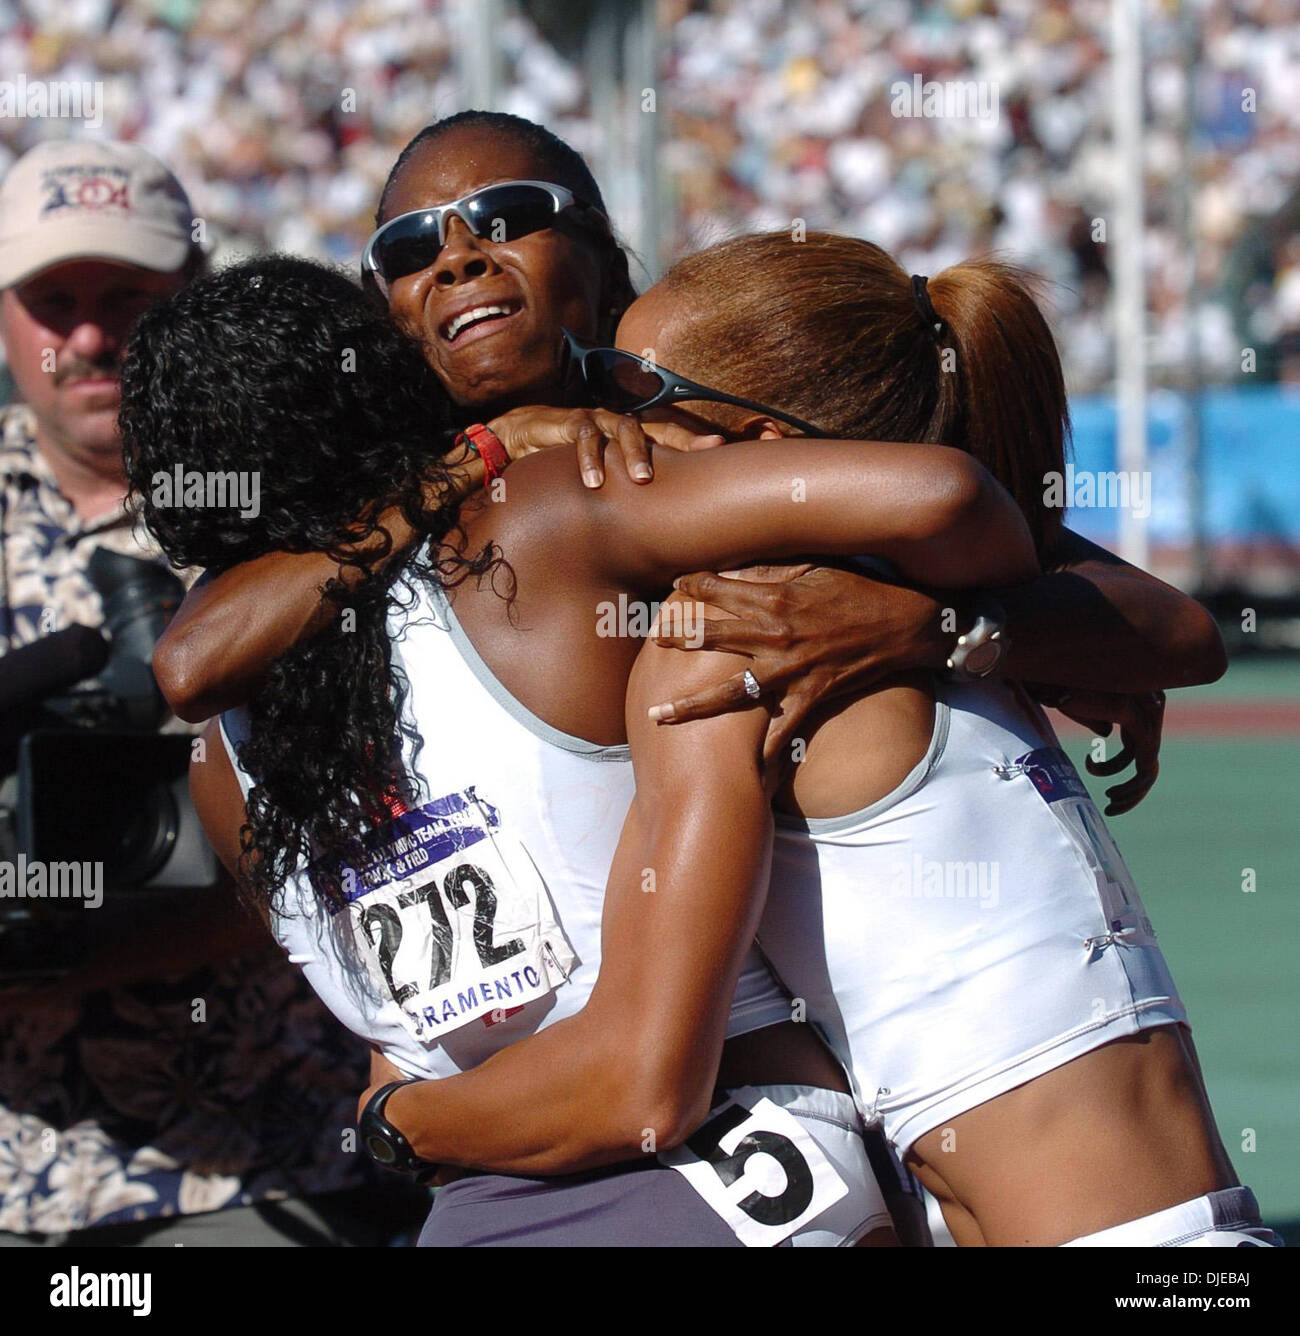 Jul 18, 2004; Sacramento, CA, USA; (L-R) GAIL DEVERS, MELISSA MORRISON and JOANNA HAYES celebrate their one, two, three placement in the women's 100-meter hurdles on day eight of the 2004 U.S. Track and Field Trials at Hornet Stadium. Devers won, Hayes was second and Morrison came in third. - Stock Image